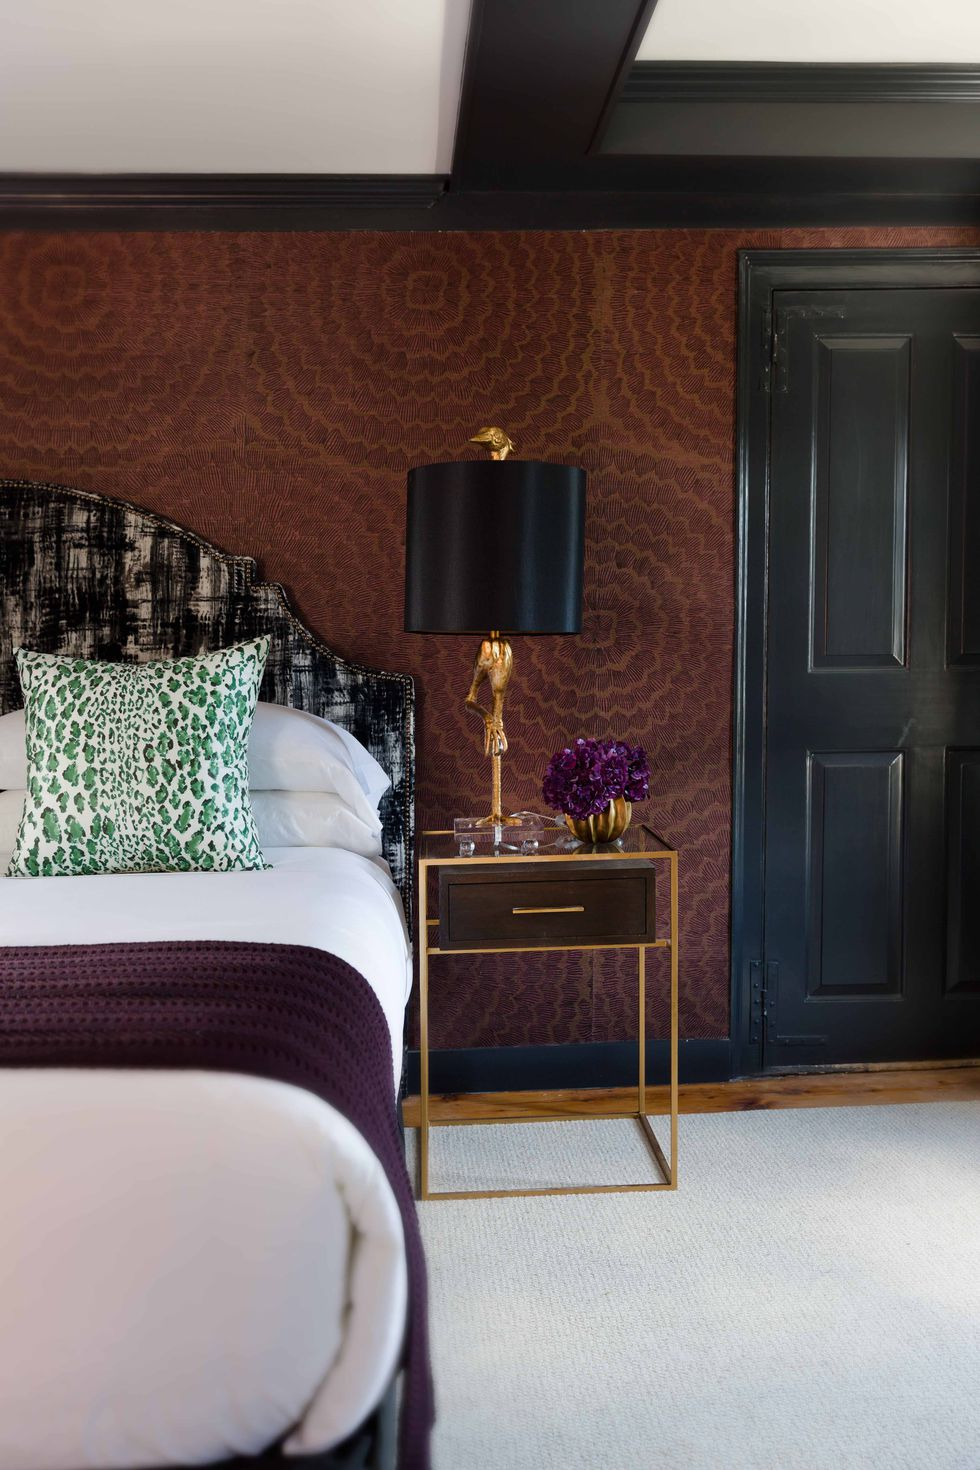 Best Design Ideas From Luxury Hotels That You Can Realize At Your Home